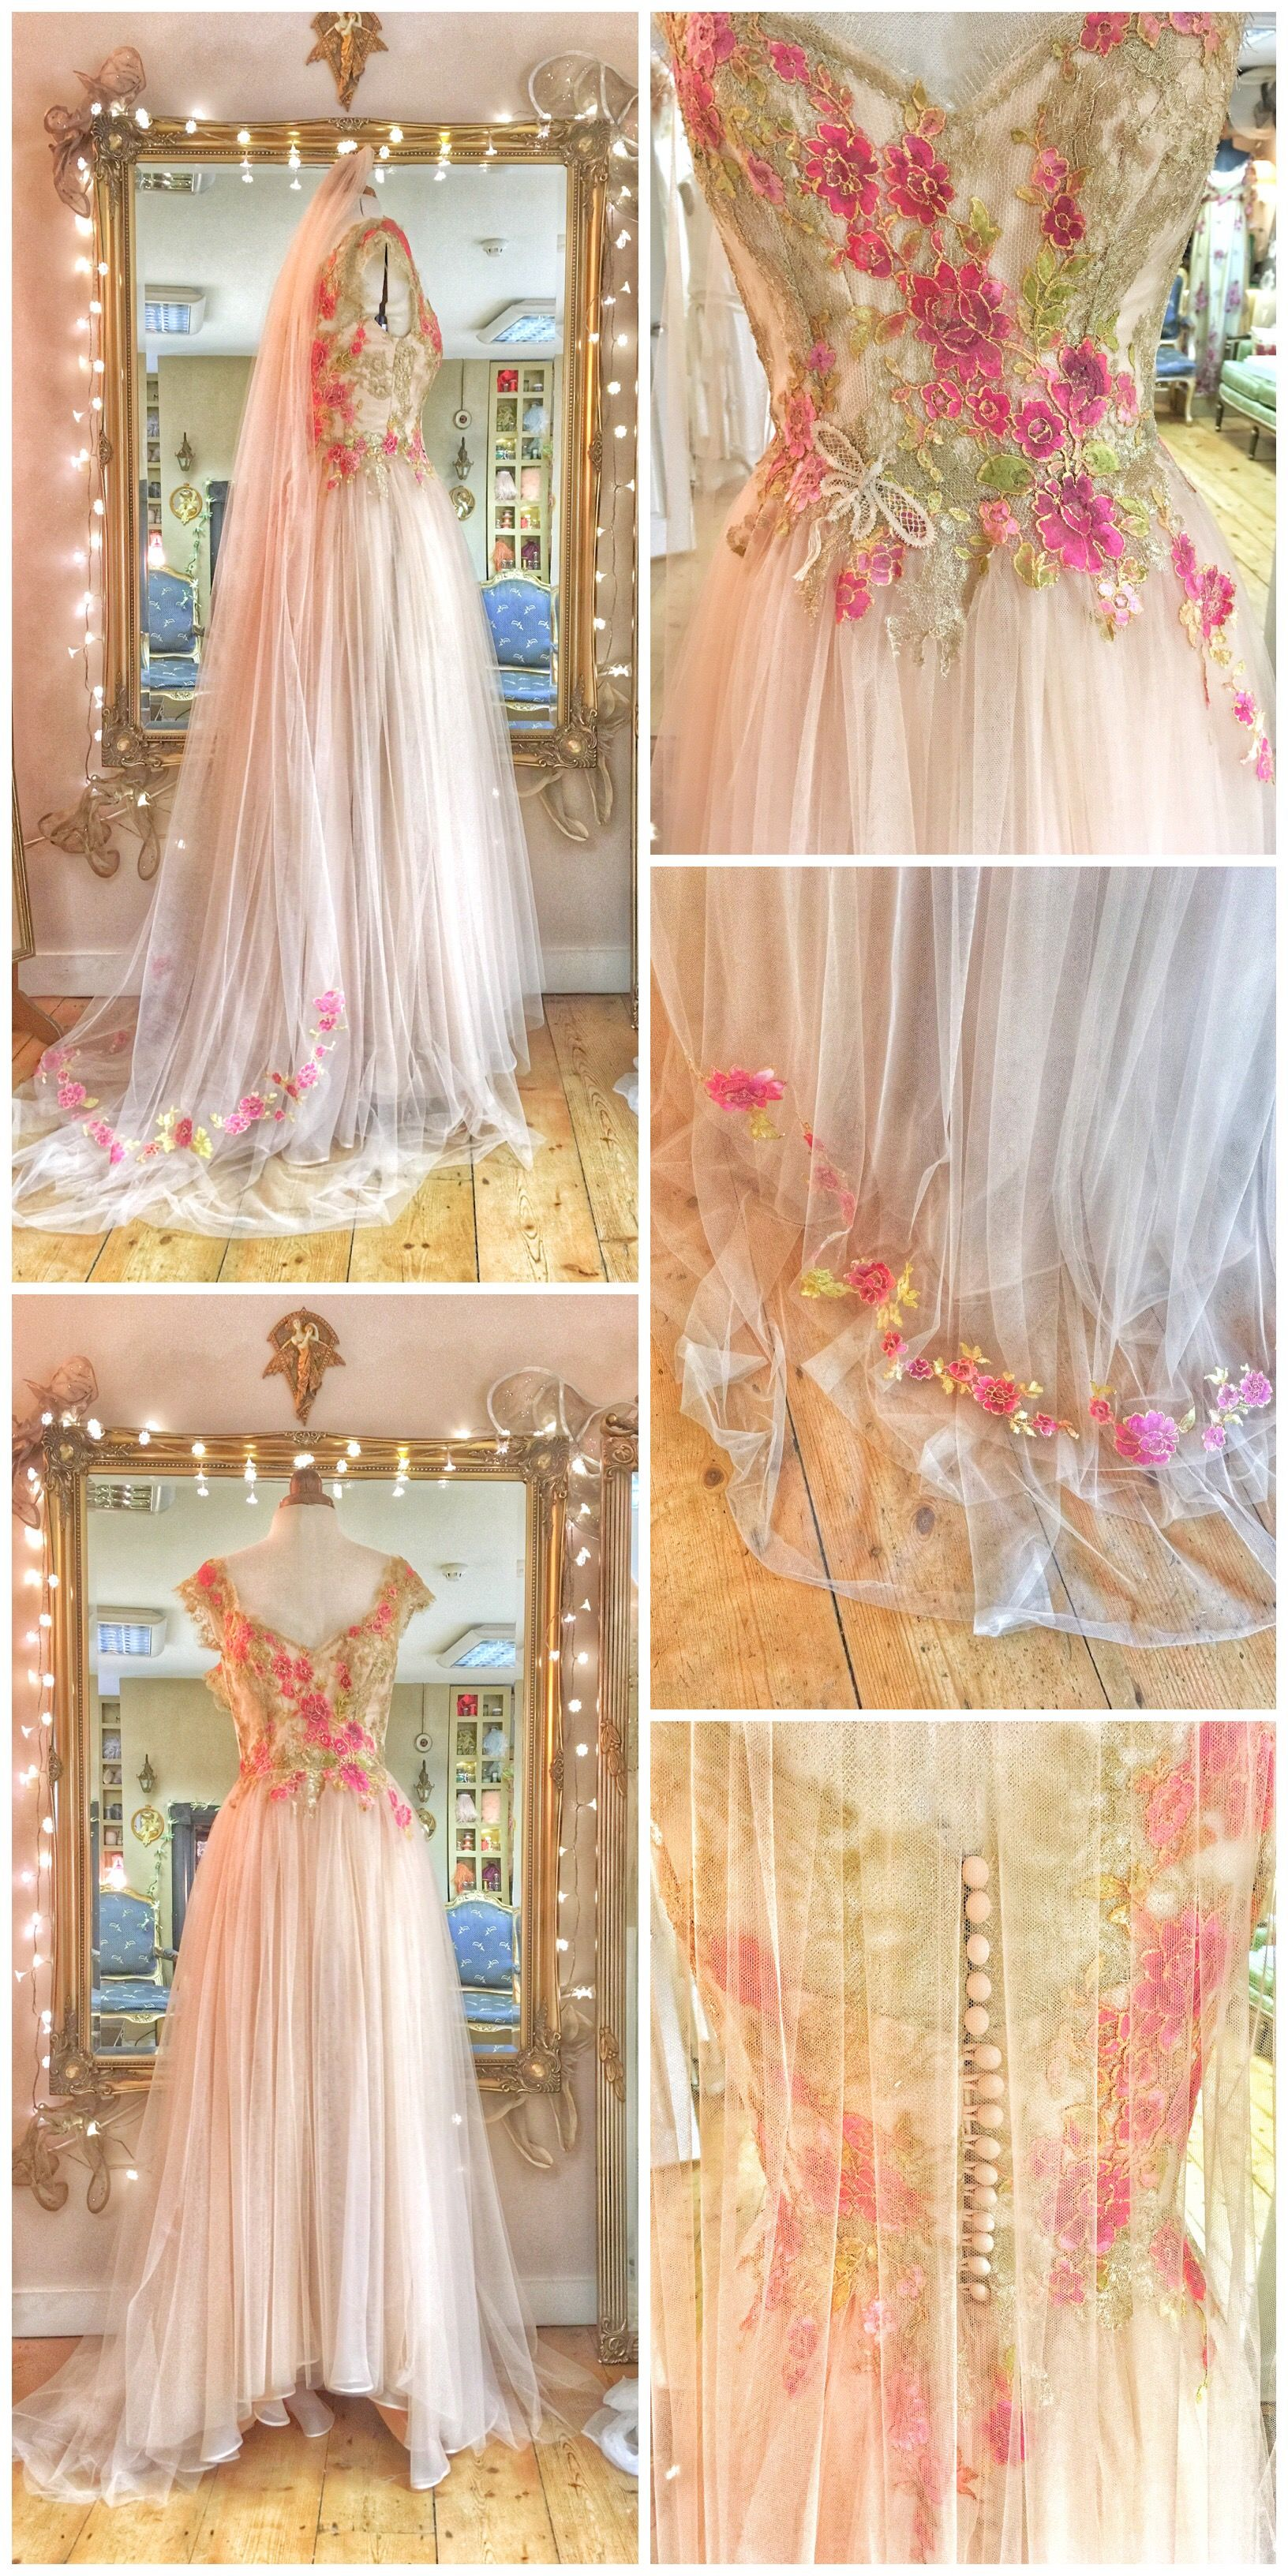 76b0c371e97f Colourful Flower Embellished Tulle Wedding Dress   D-Dis Classy ...